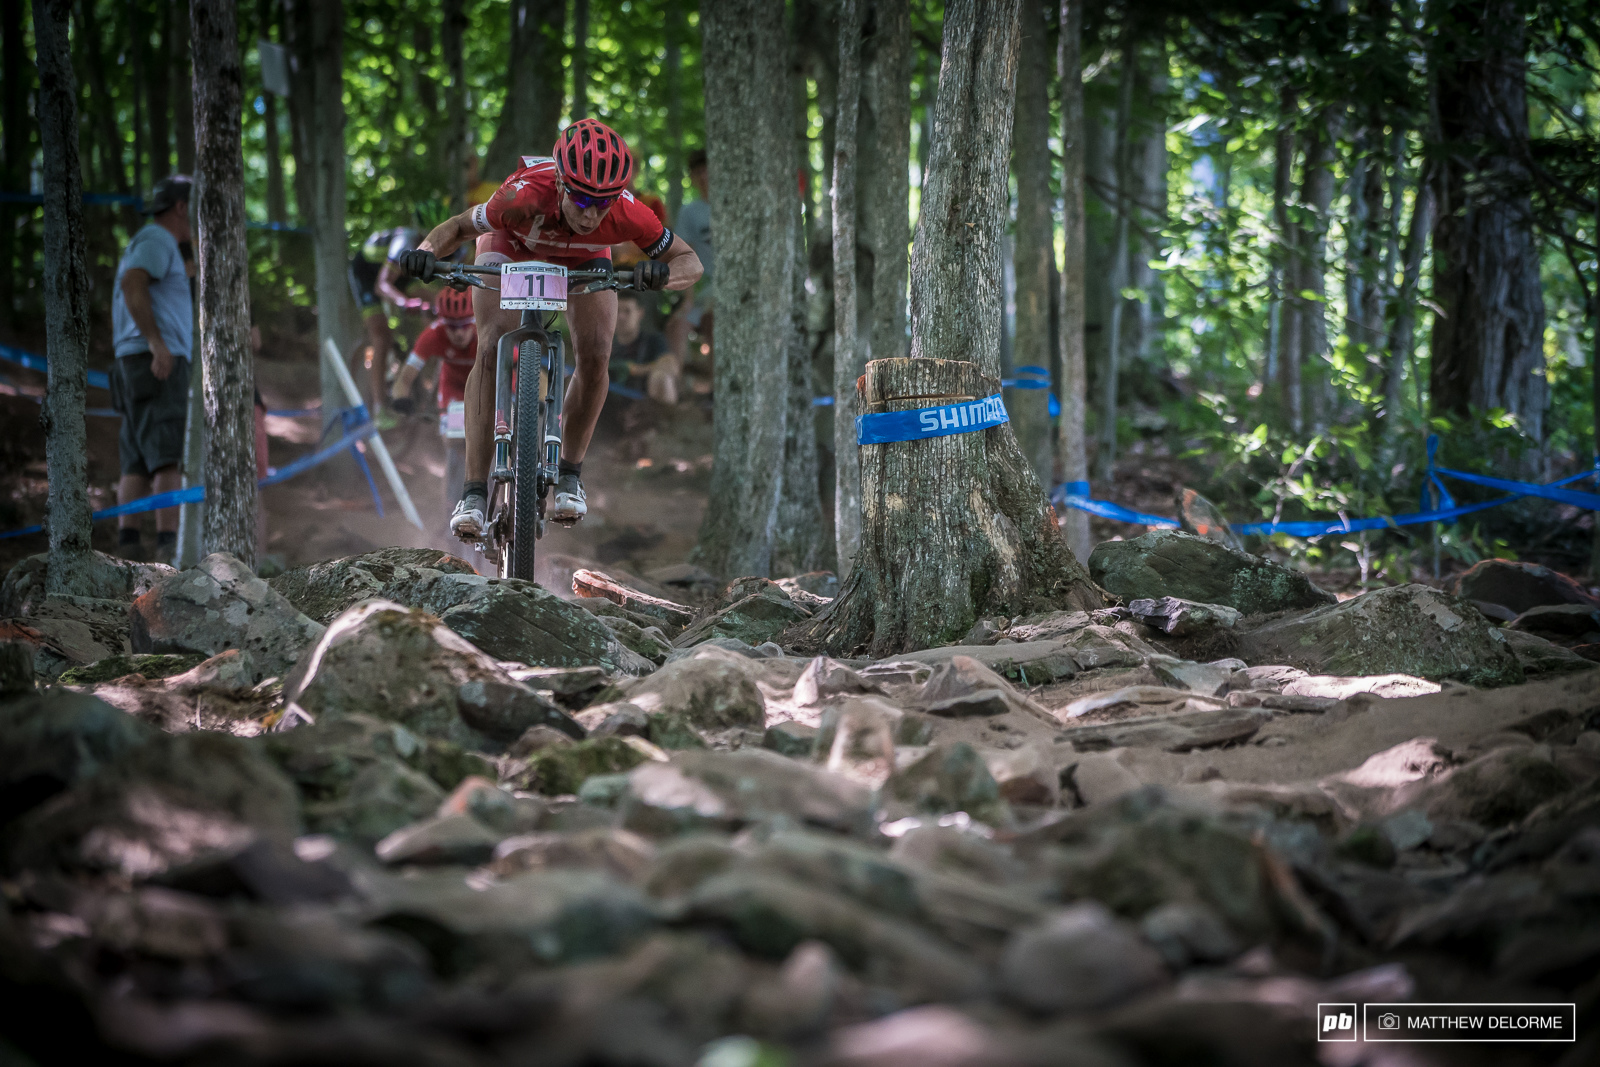 Annika Languid getting low in the rock garden. An early spill didn t spoil her race she held on to finish third.